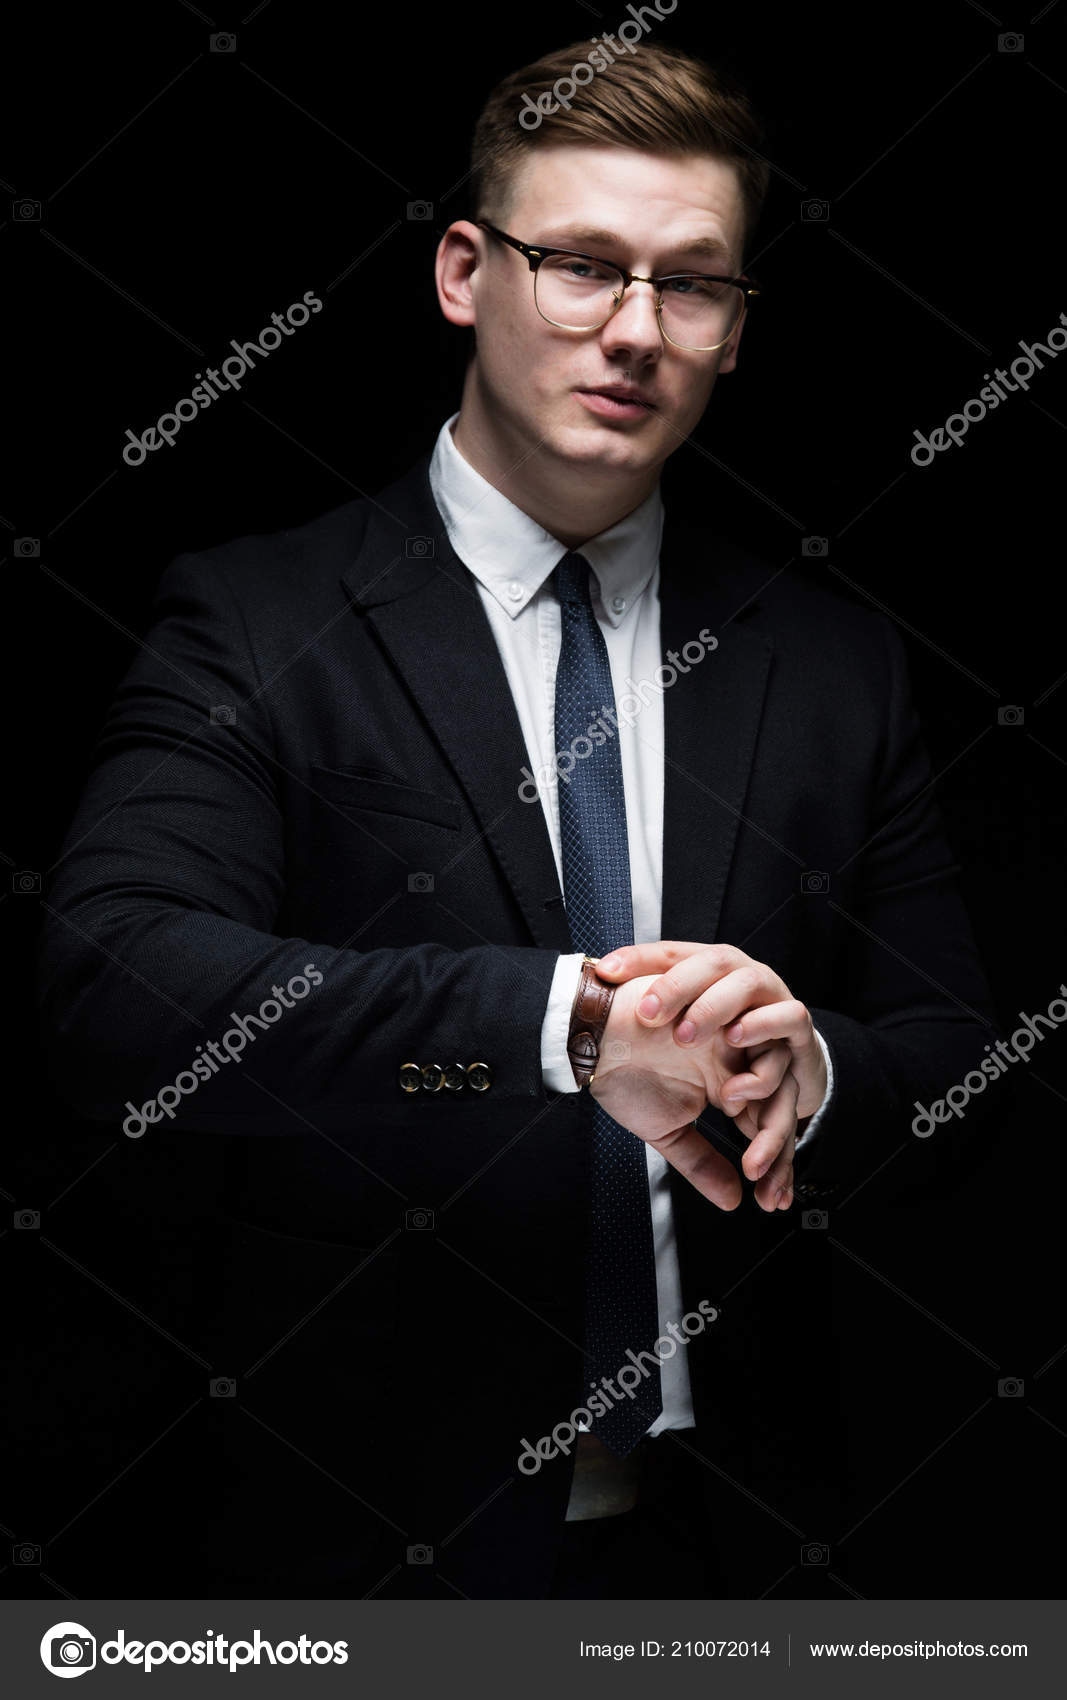 cb8b34a1d2d7 Young caucasian elegant successful smiling smart business man in black suit  and tie standing in office looking in camera — Photo by fotoevent.stock